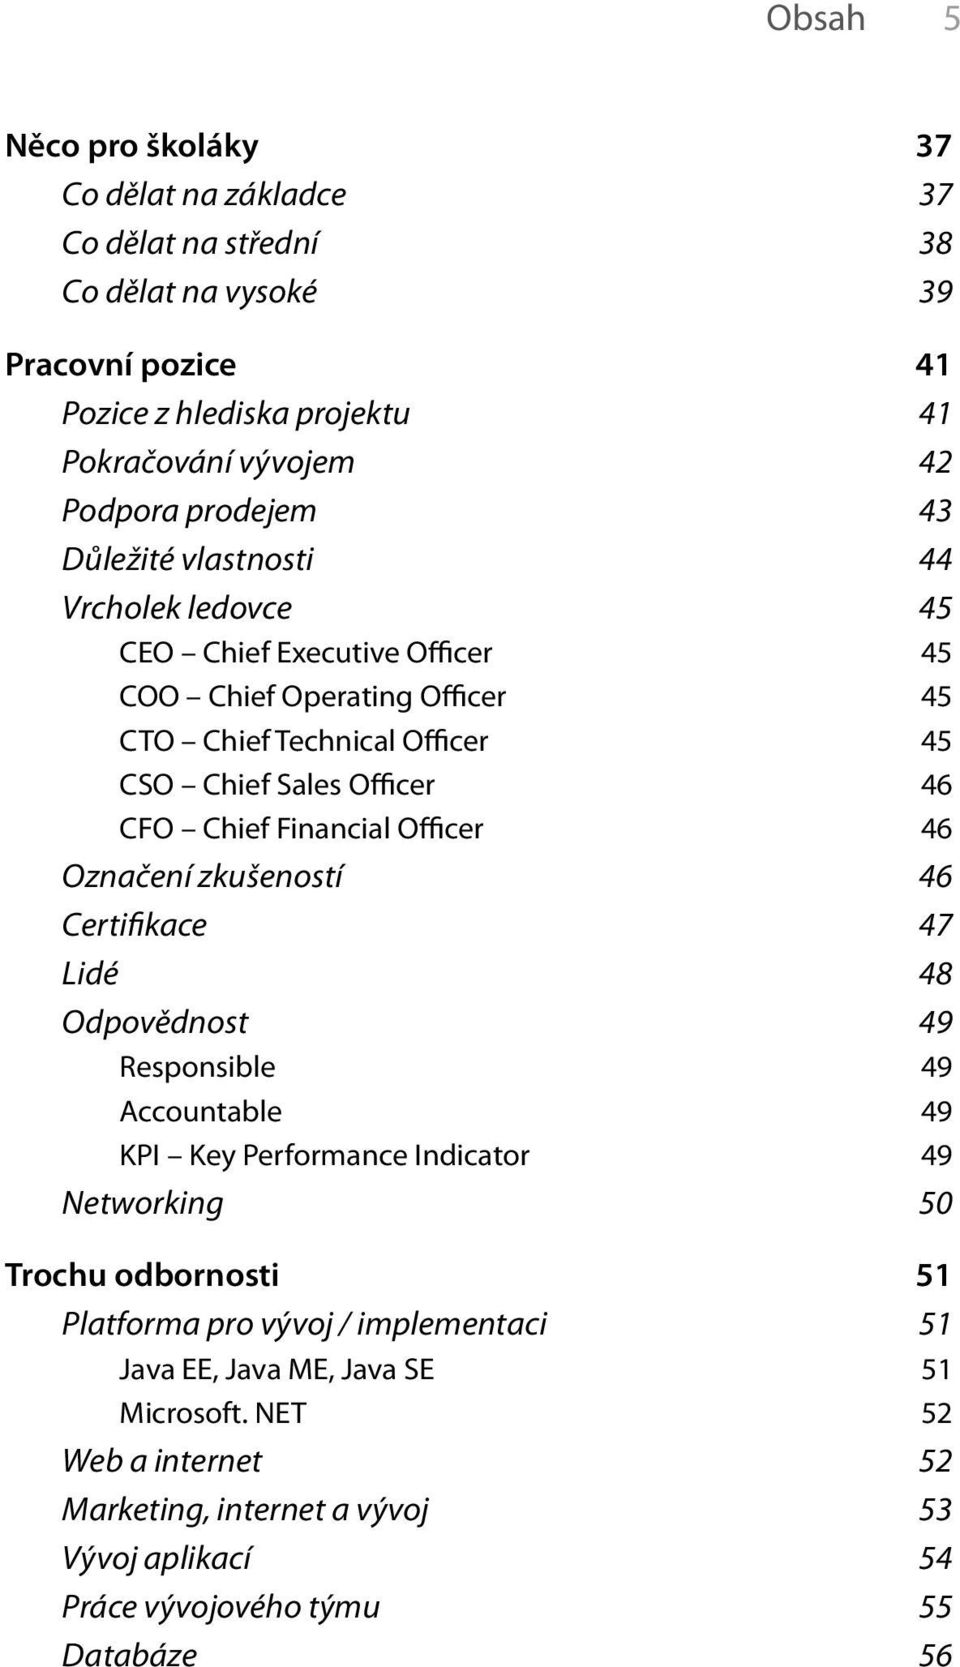 Chief Financial Officer 46 Označení zkušeností 46 Certifikace 47 Lidé 48 Odpovědnost 49 Responsible 49 Accountable 49 KPI Key Performance Indicator 49 Networking 50 Trochu odbornosti